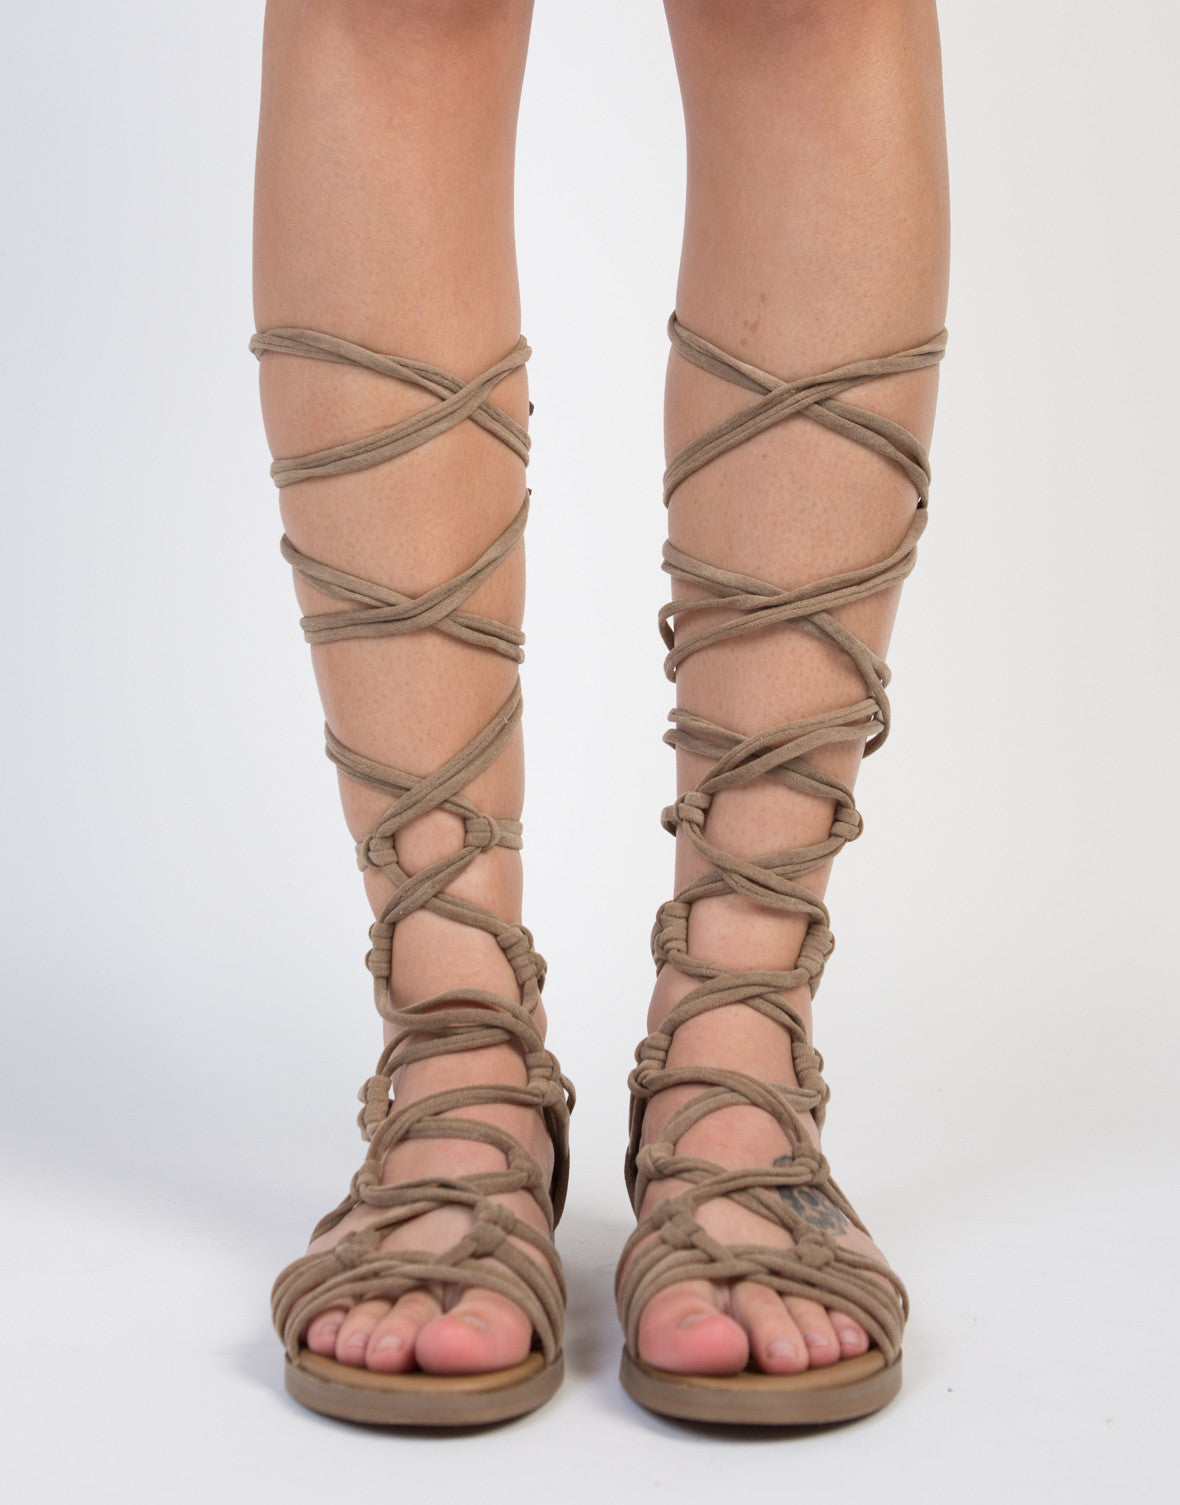 Knot It Up Gladiator Sandals